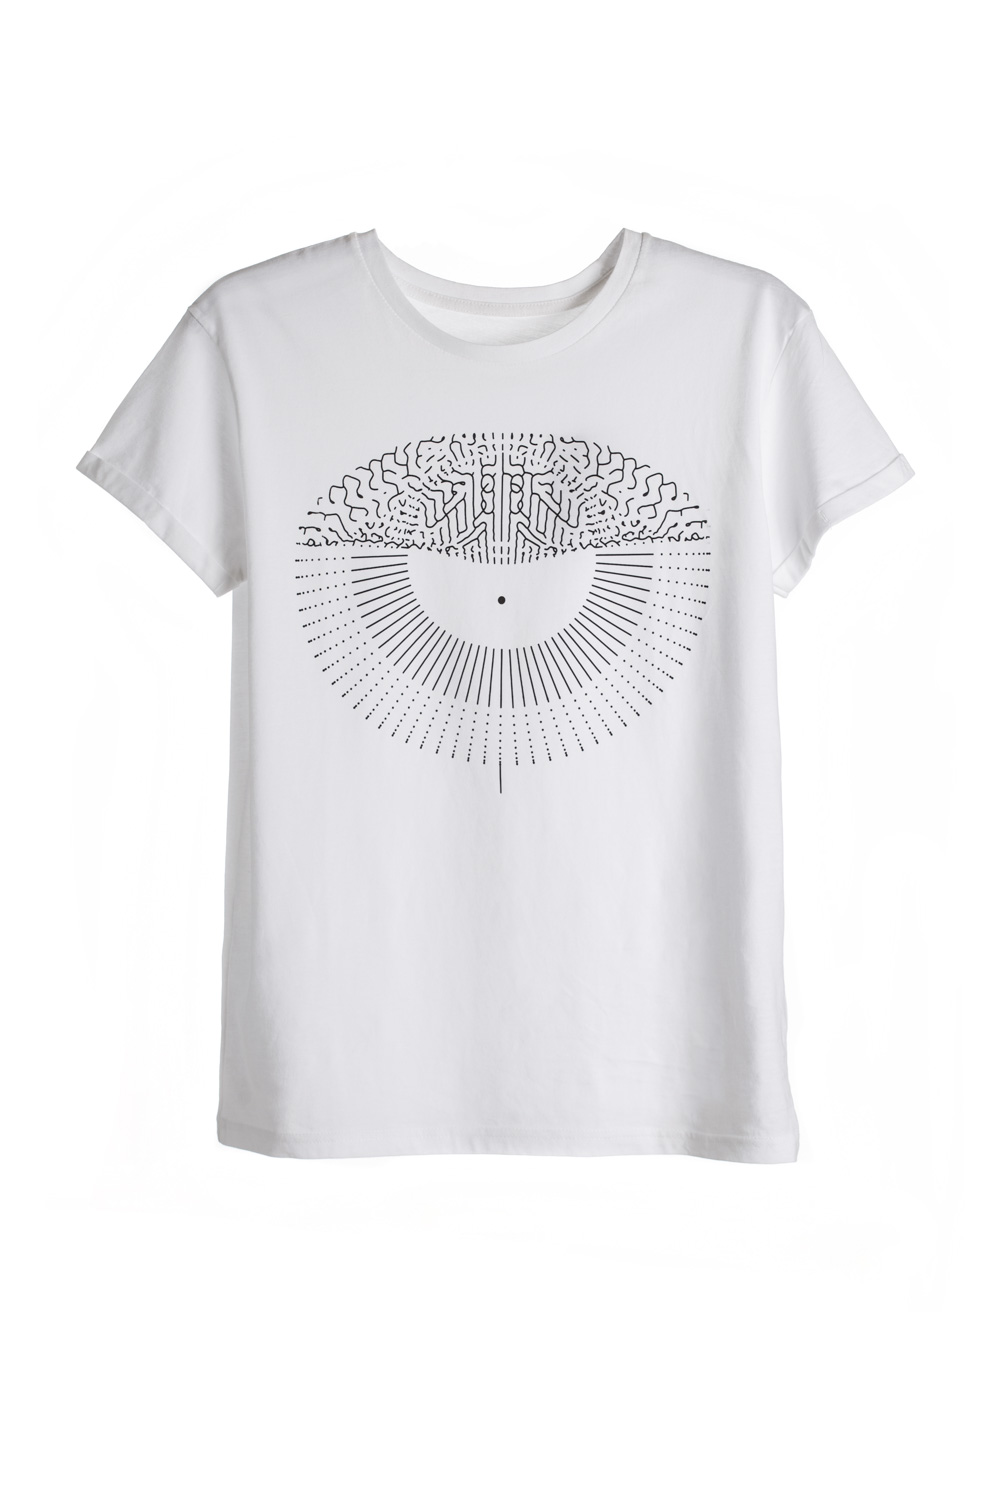 White Eye Print T-shirt short sleeve round neckline